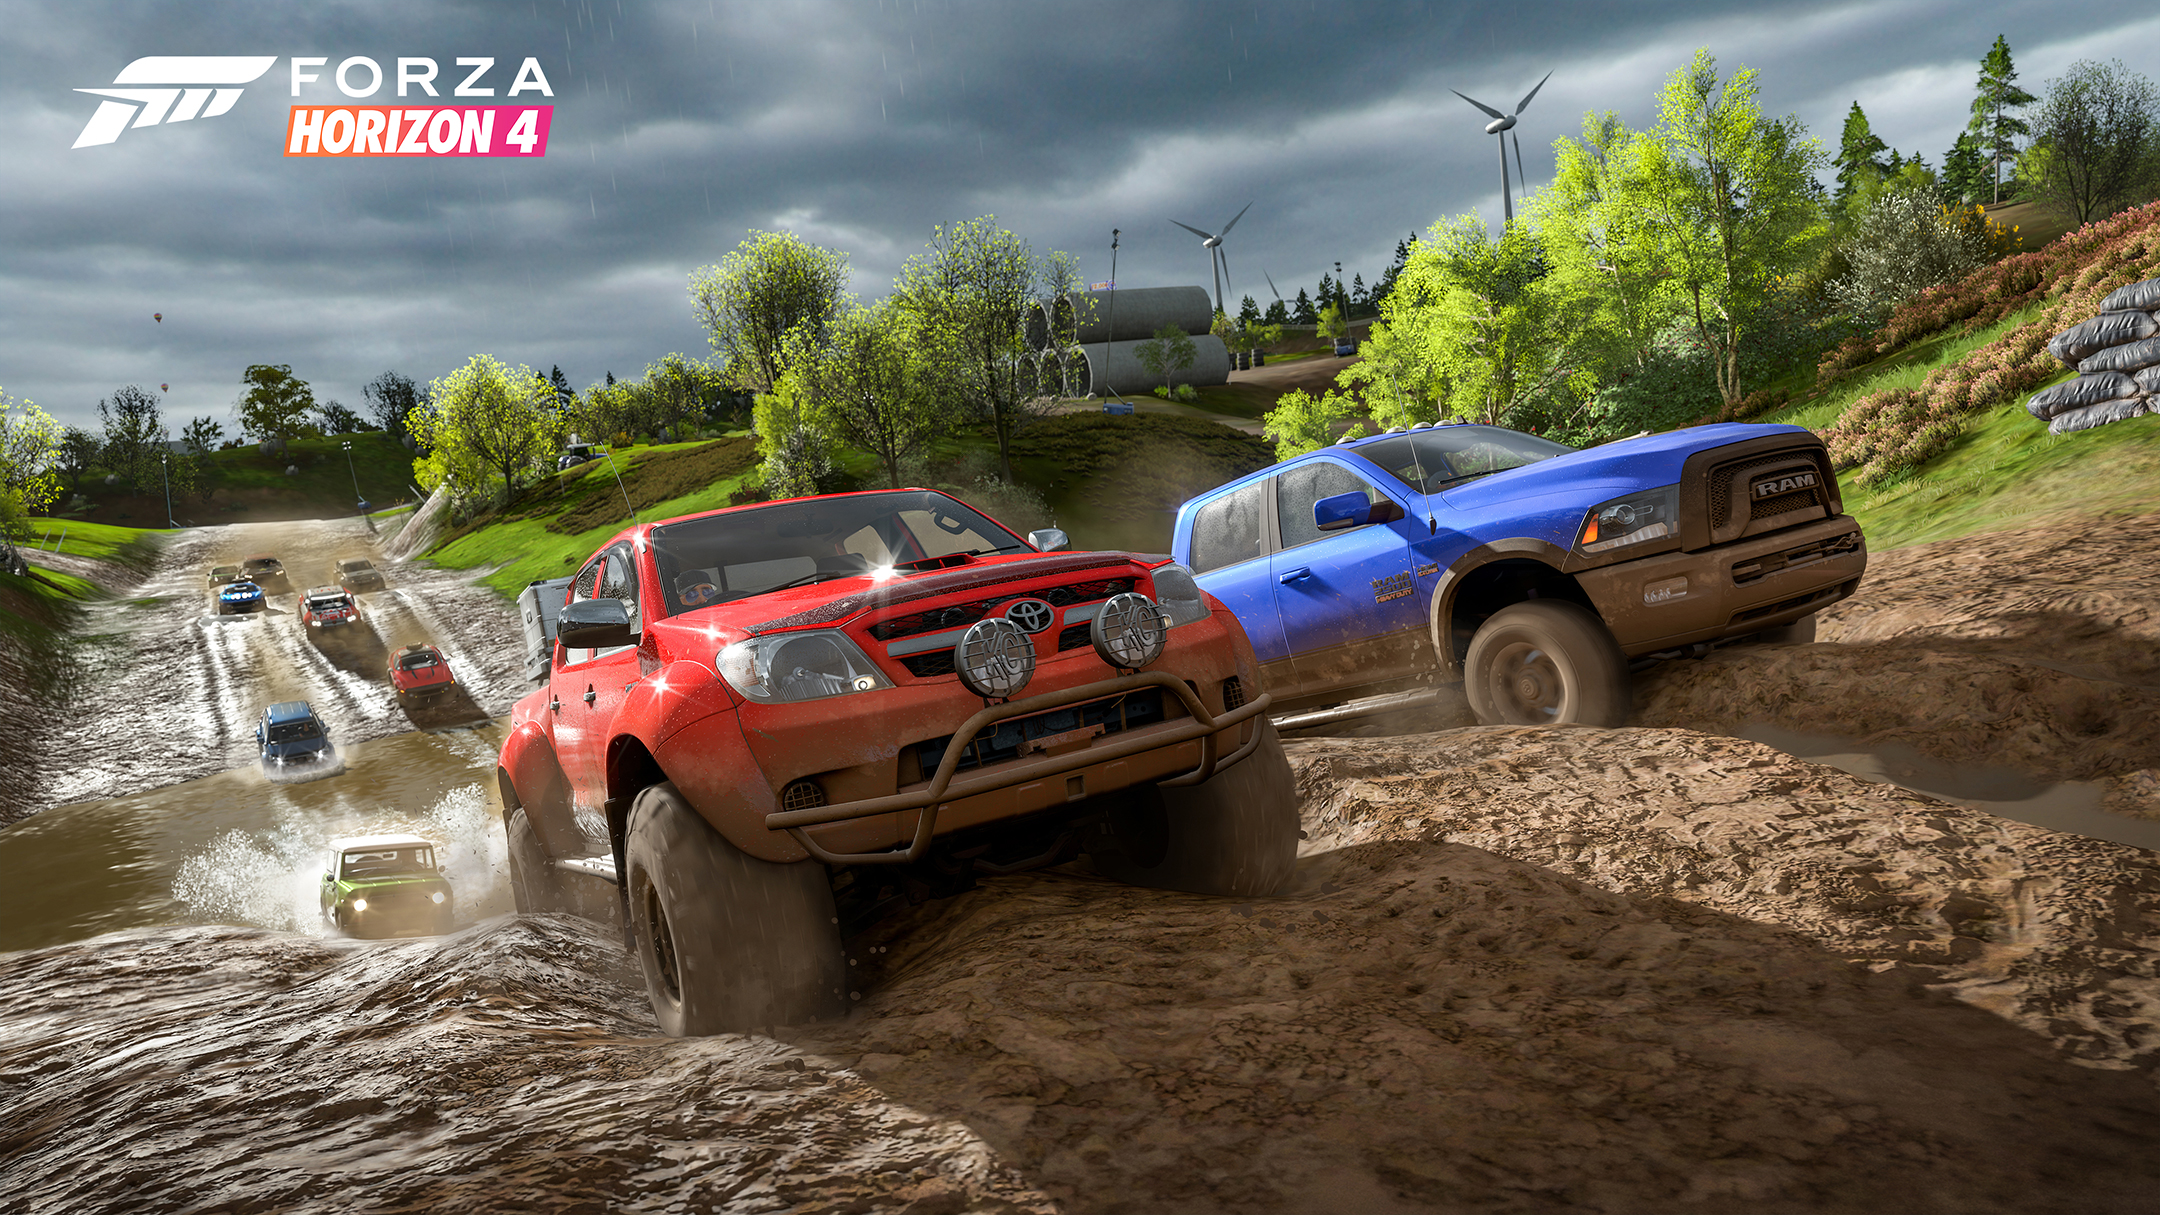 Forza Horizon 4 - 2018 - screen cars - dirt trucks - RAM vs Toyota